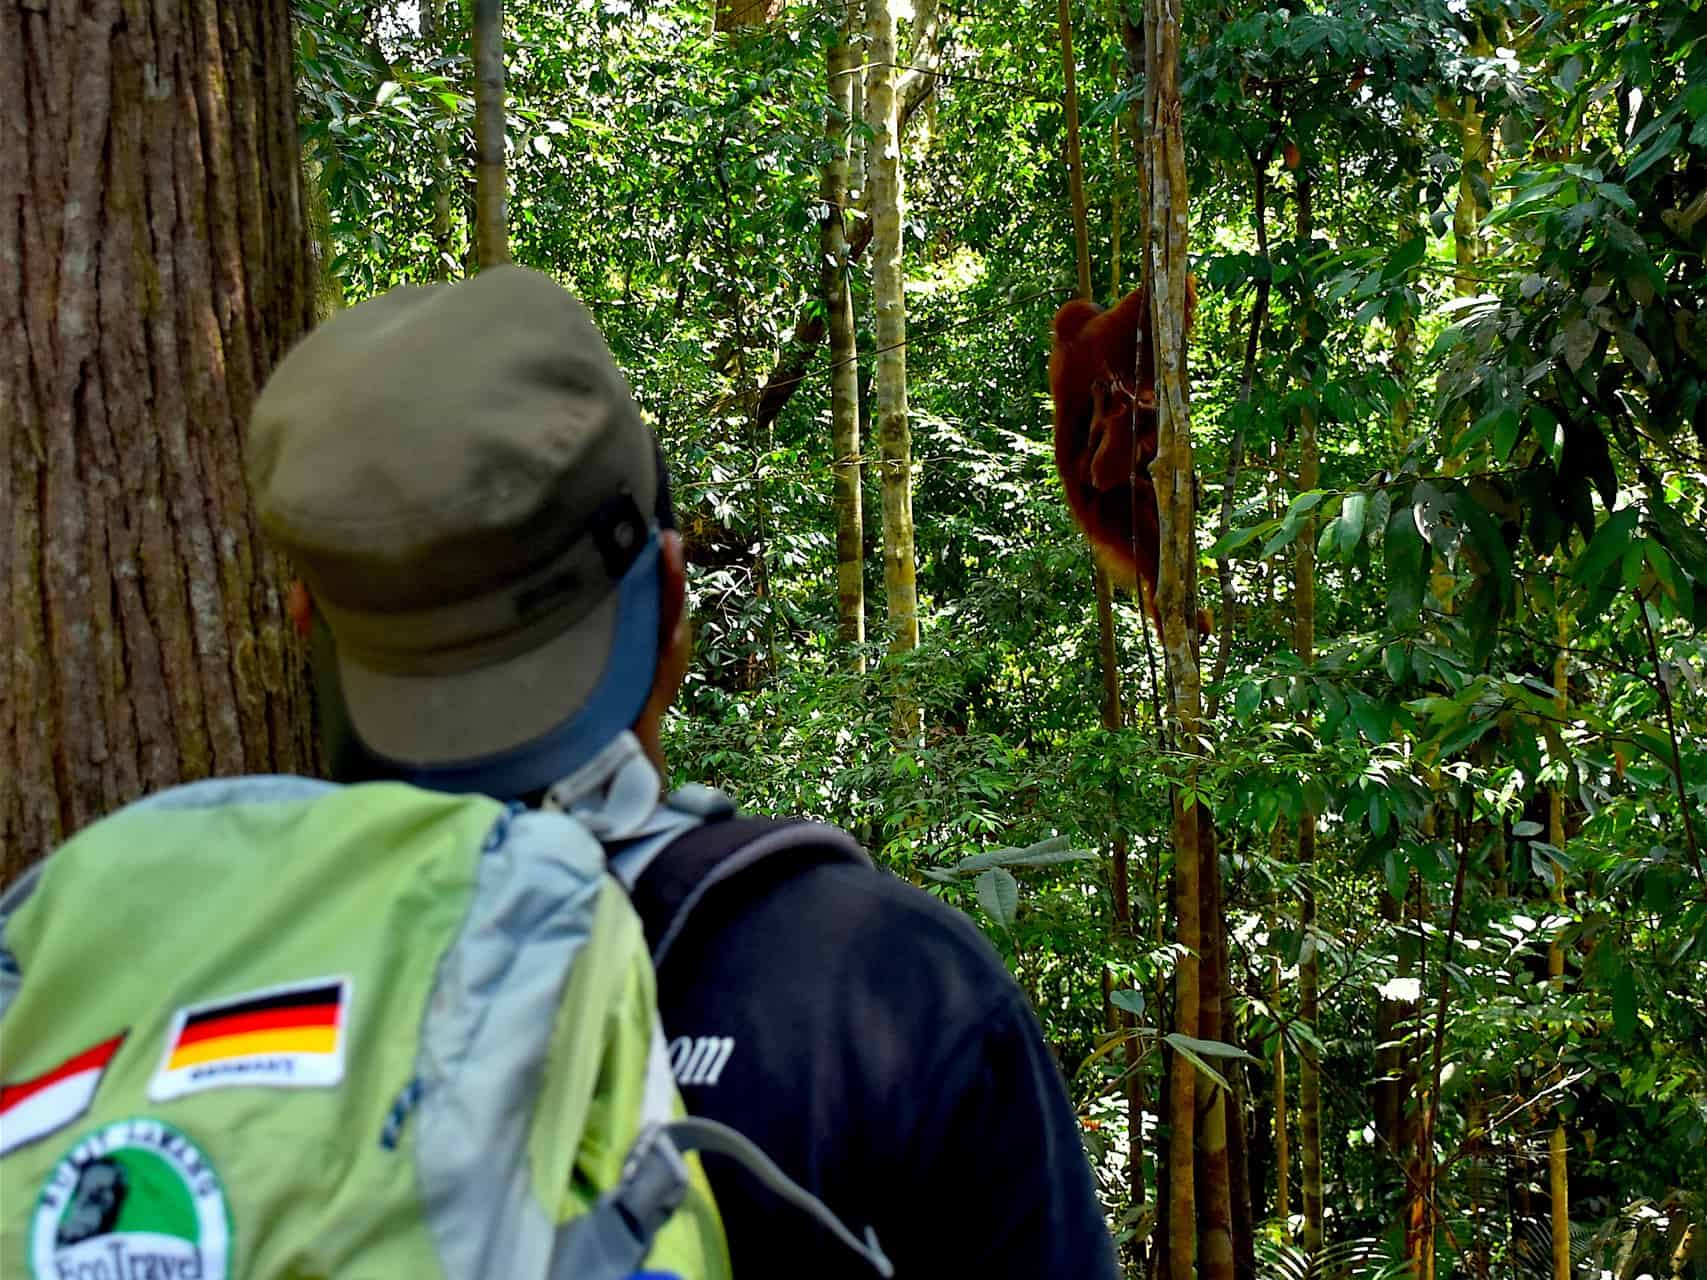 JUNGLE TREKKING - SUMATRA ECOTRAVEL